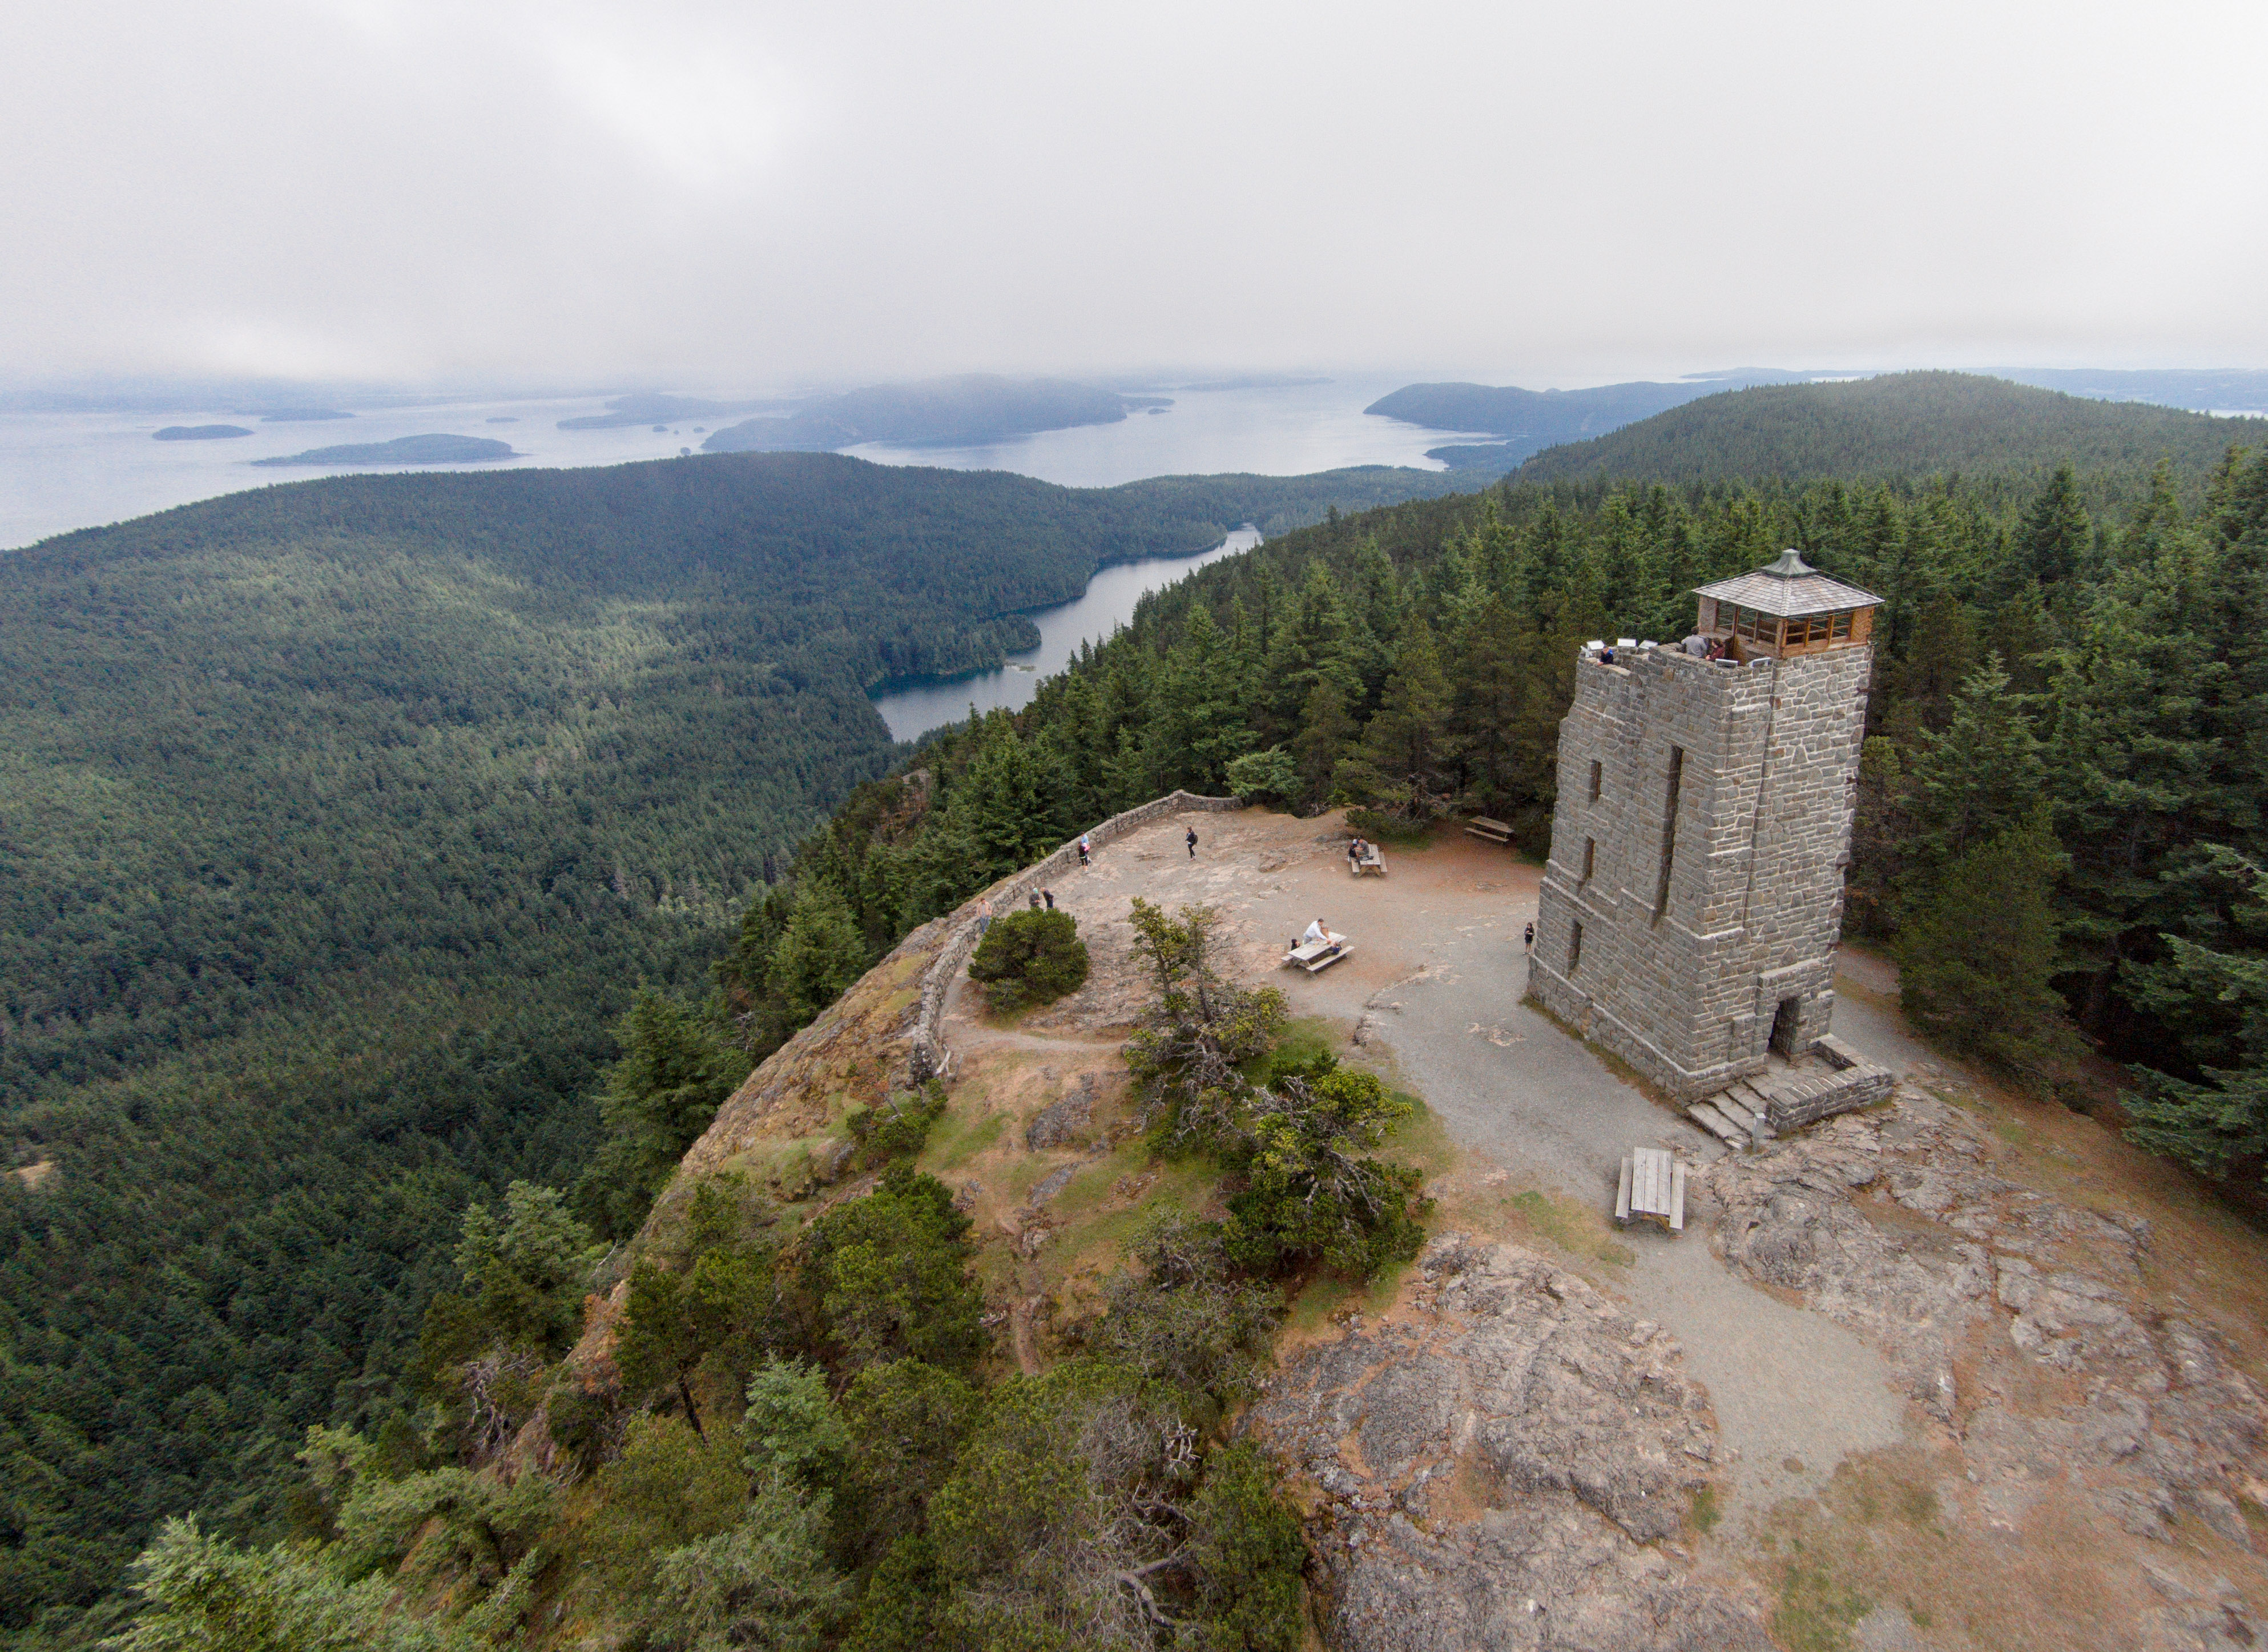 The summit of Mount Constitution offers sweeping views of the surrounding landscape. Visitors are allowed to climb inside the tower.